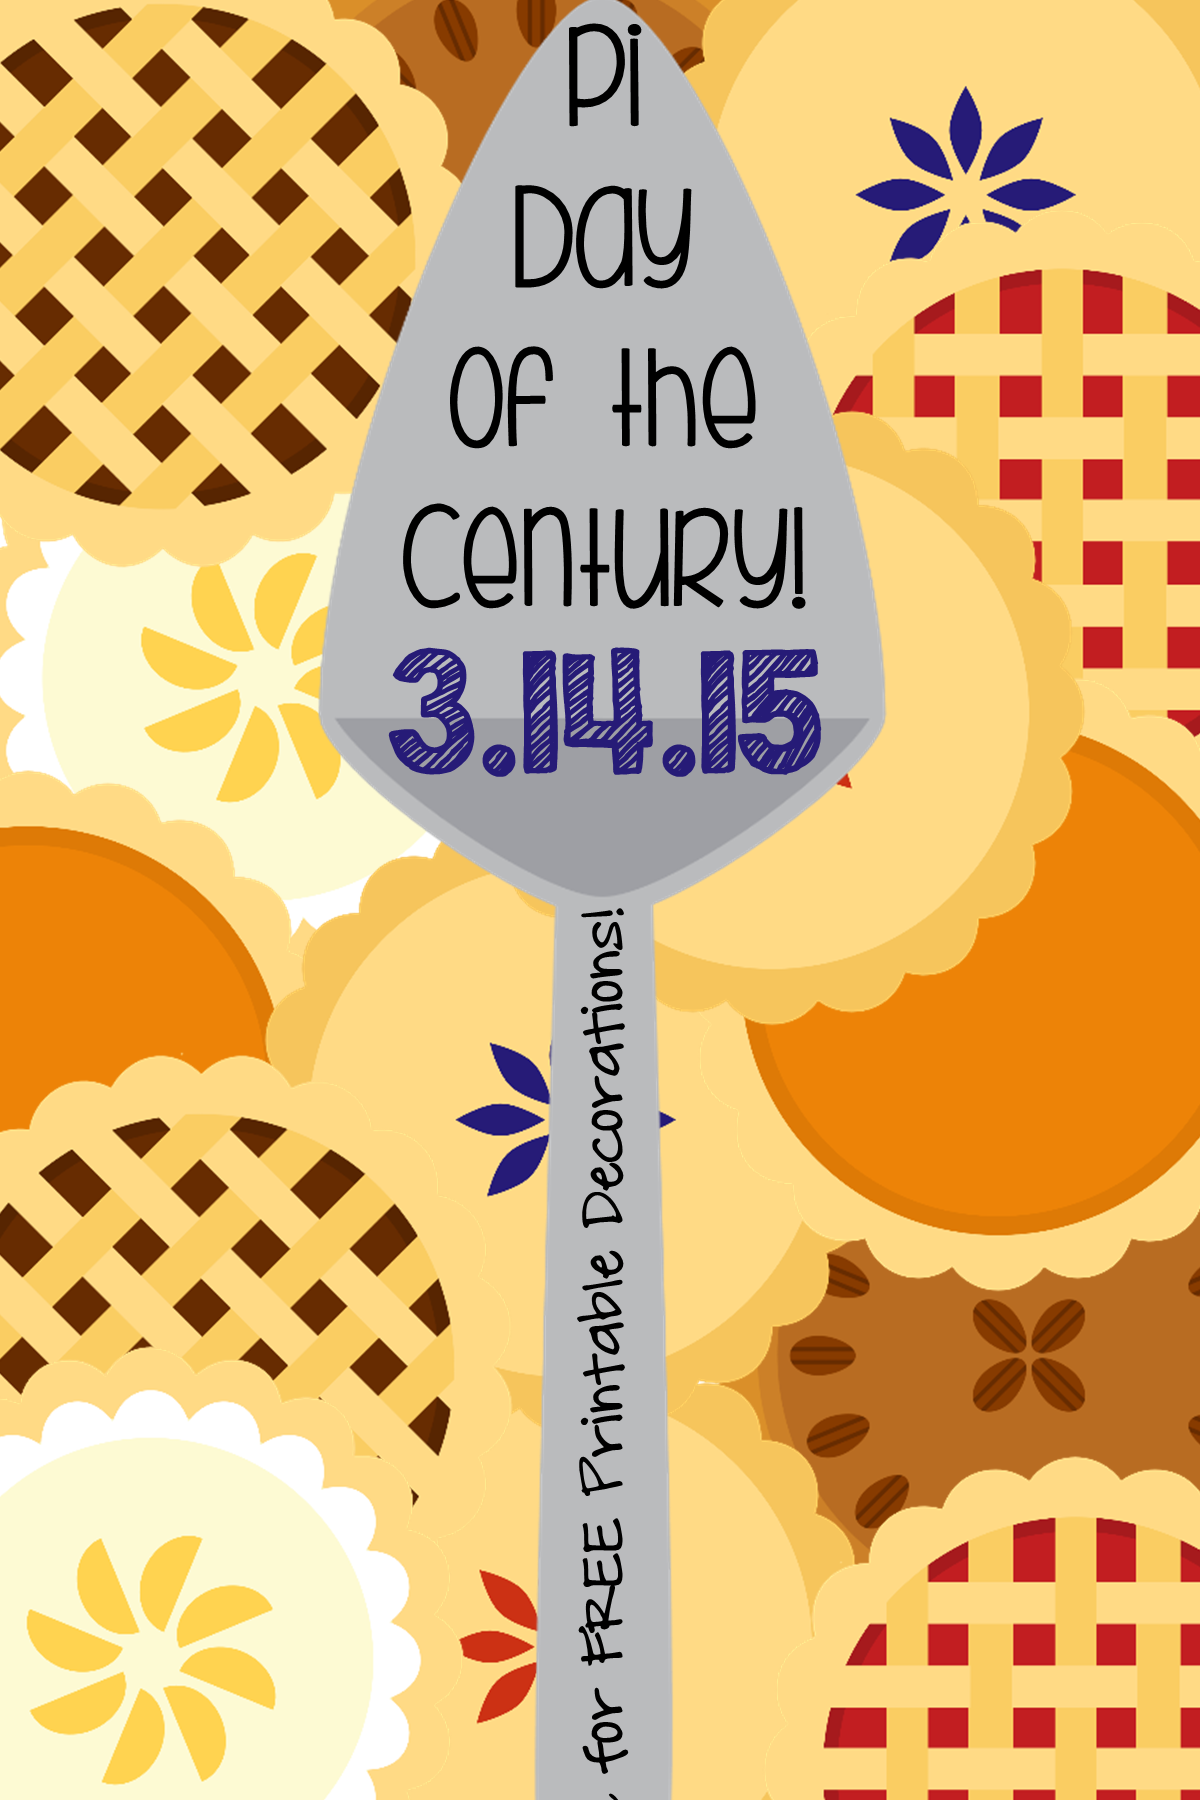 3 14 15 Pi Day Of The Century It S Going To Be Huge Find Lesson Activities And Free Printable Decorations To C School Celebration 4th Grade Math Happy Pi Day [ 1800 x 1200 Pixel ]